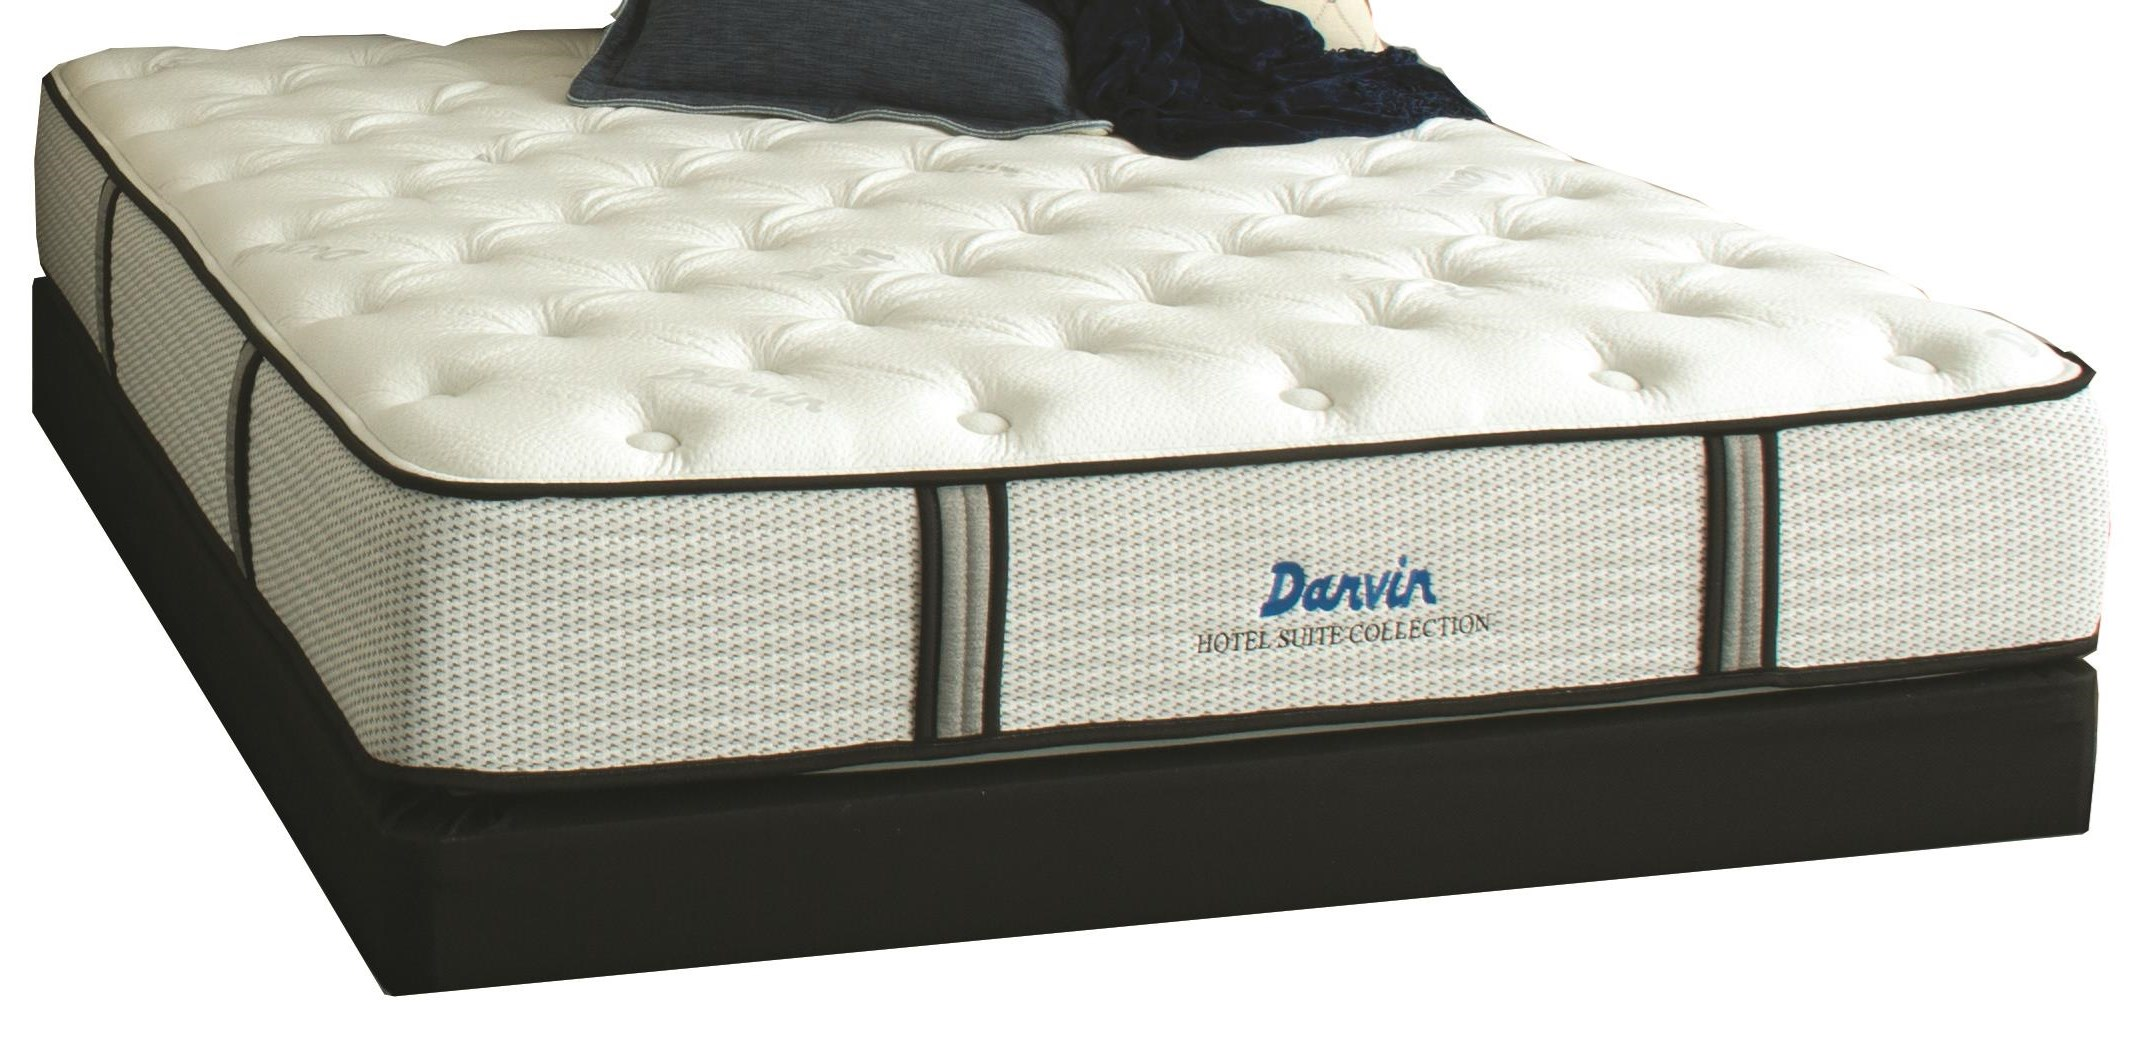 Hotel Suite Luxury Firm Queen Mattress Set by Restonic at Darvin Furniture